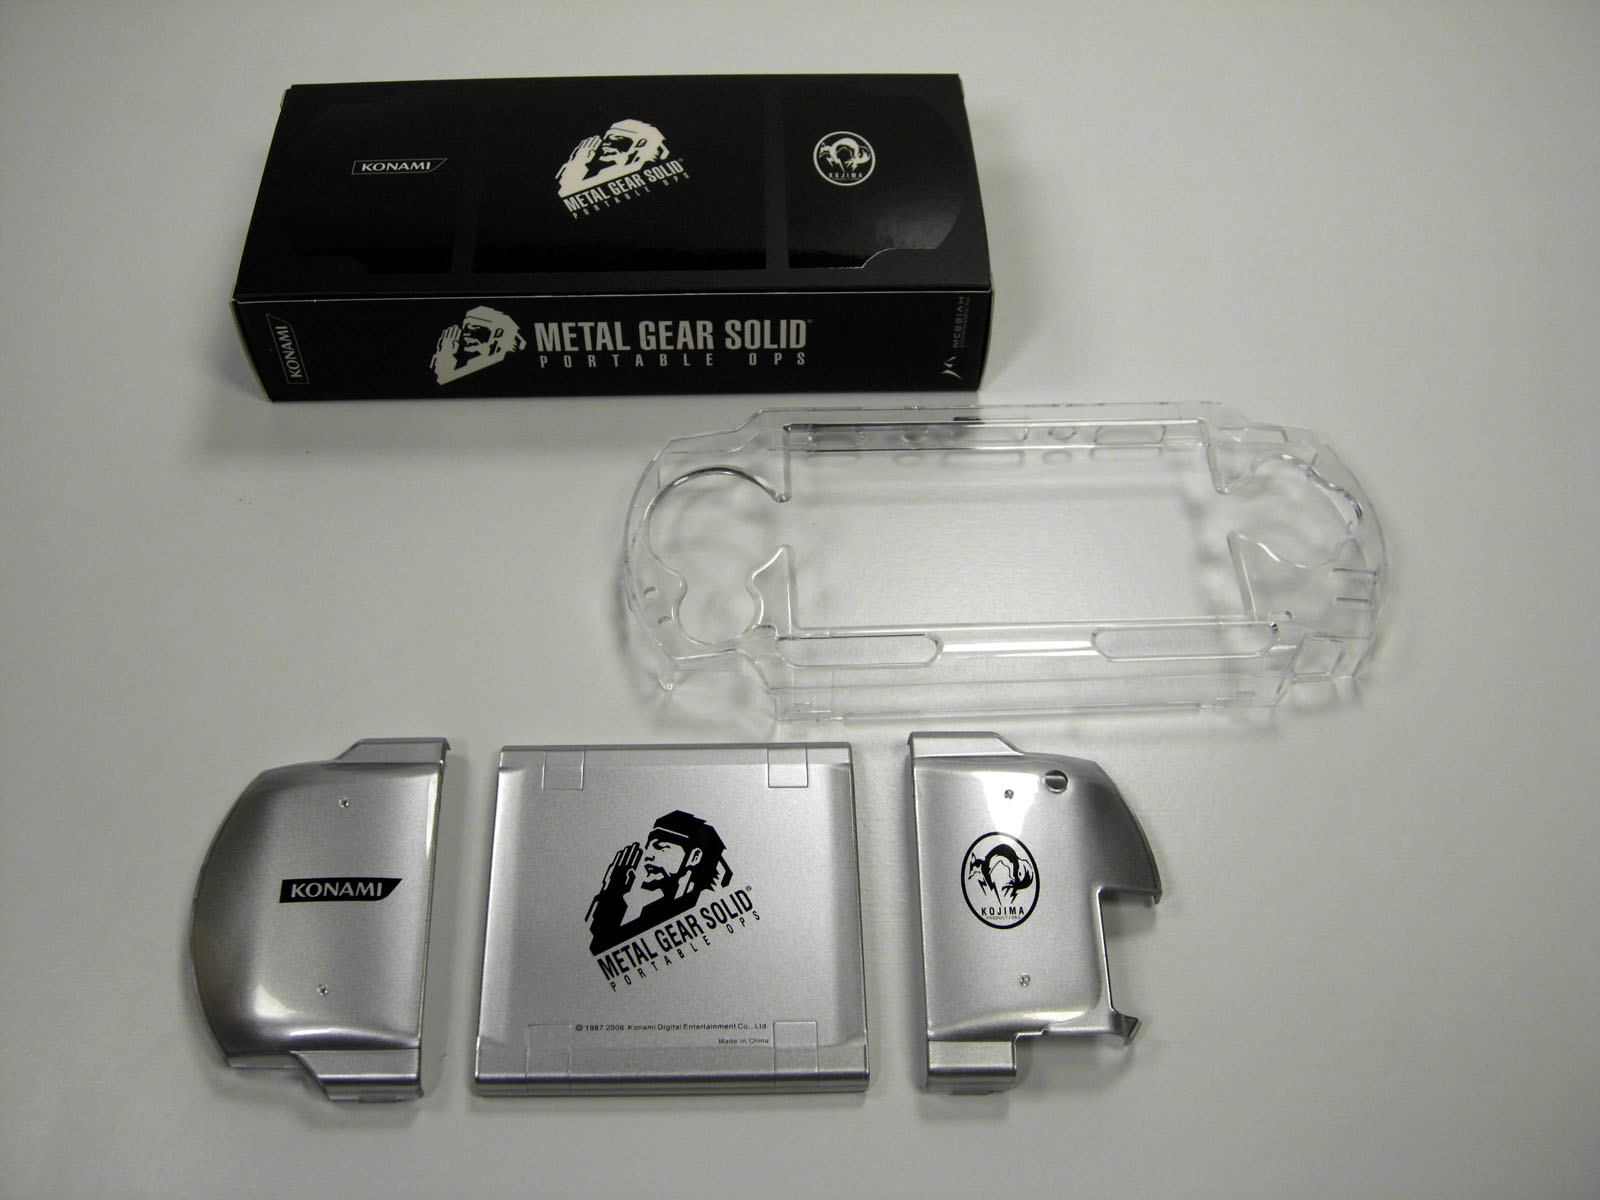 Metal Gear Solid PSP Case - 05657